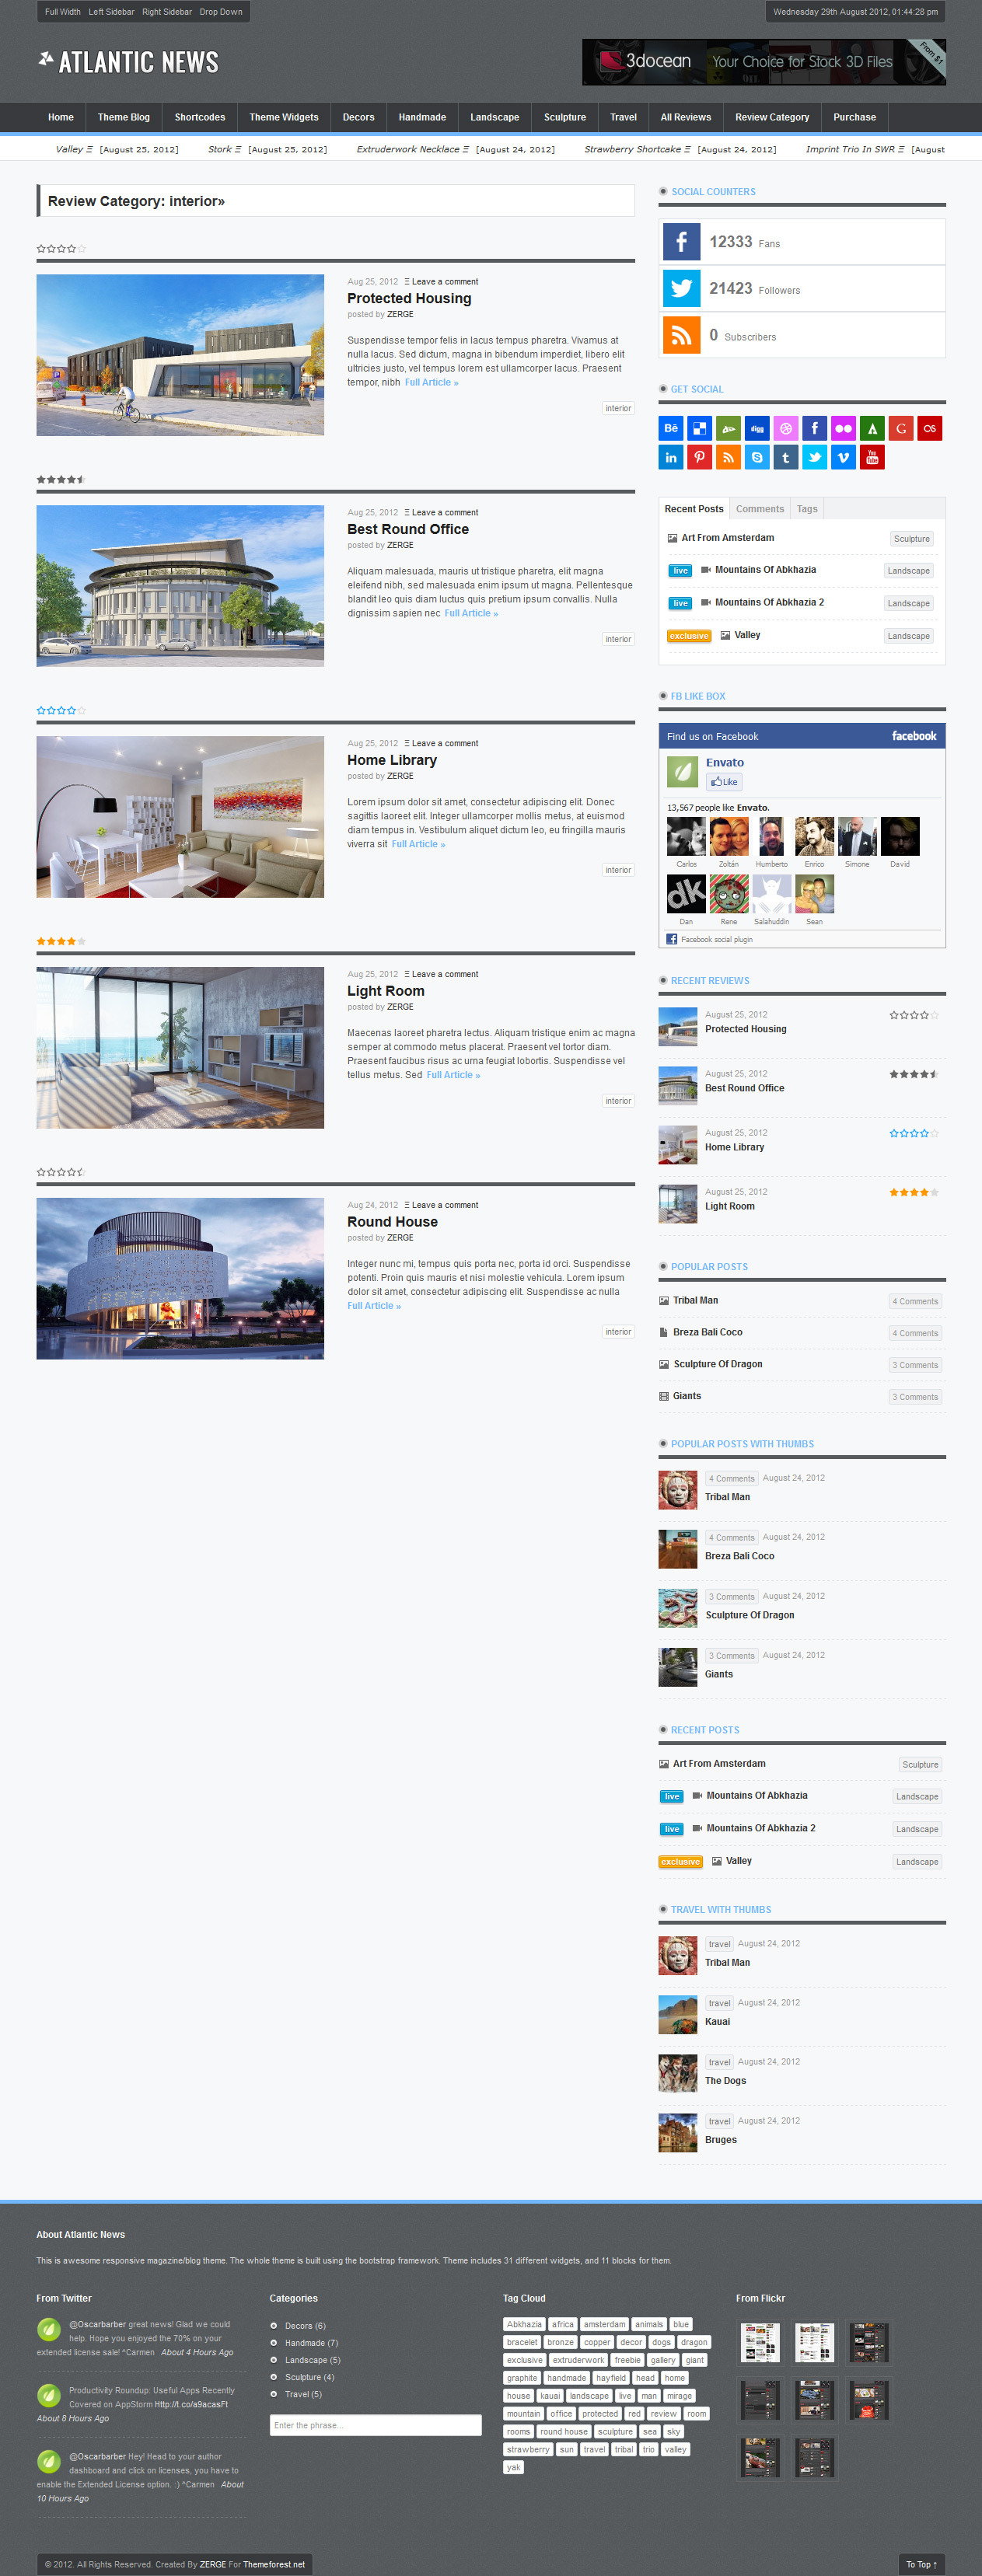 Atlantic News - Responsive WordPress Magazine Blog - 05_Review_Category